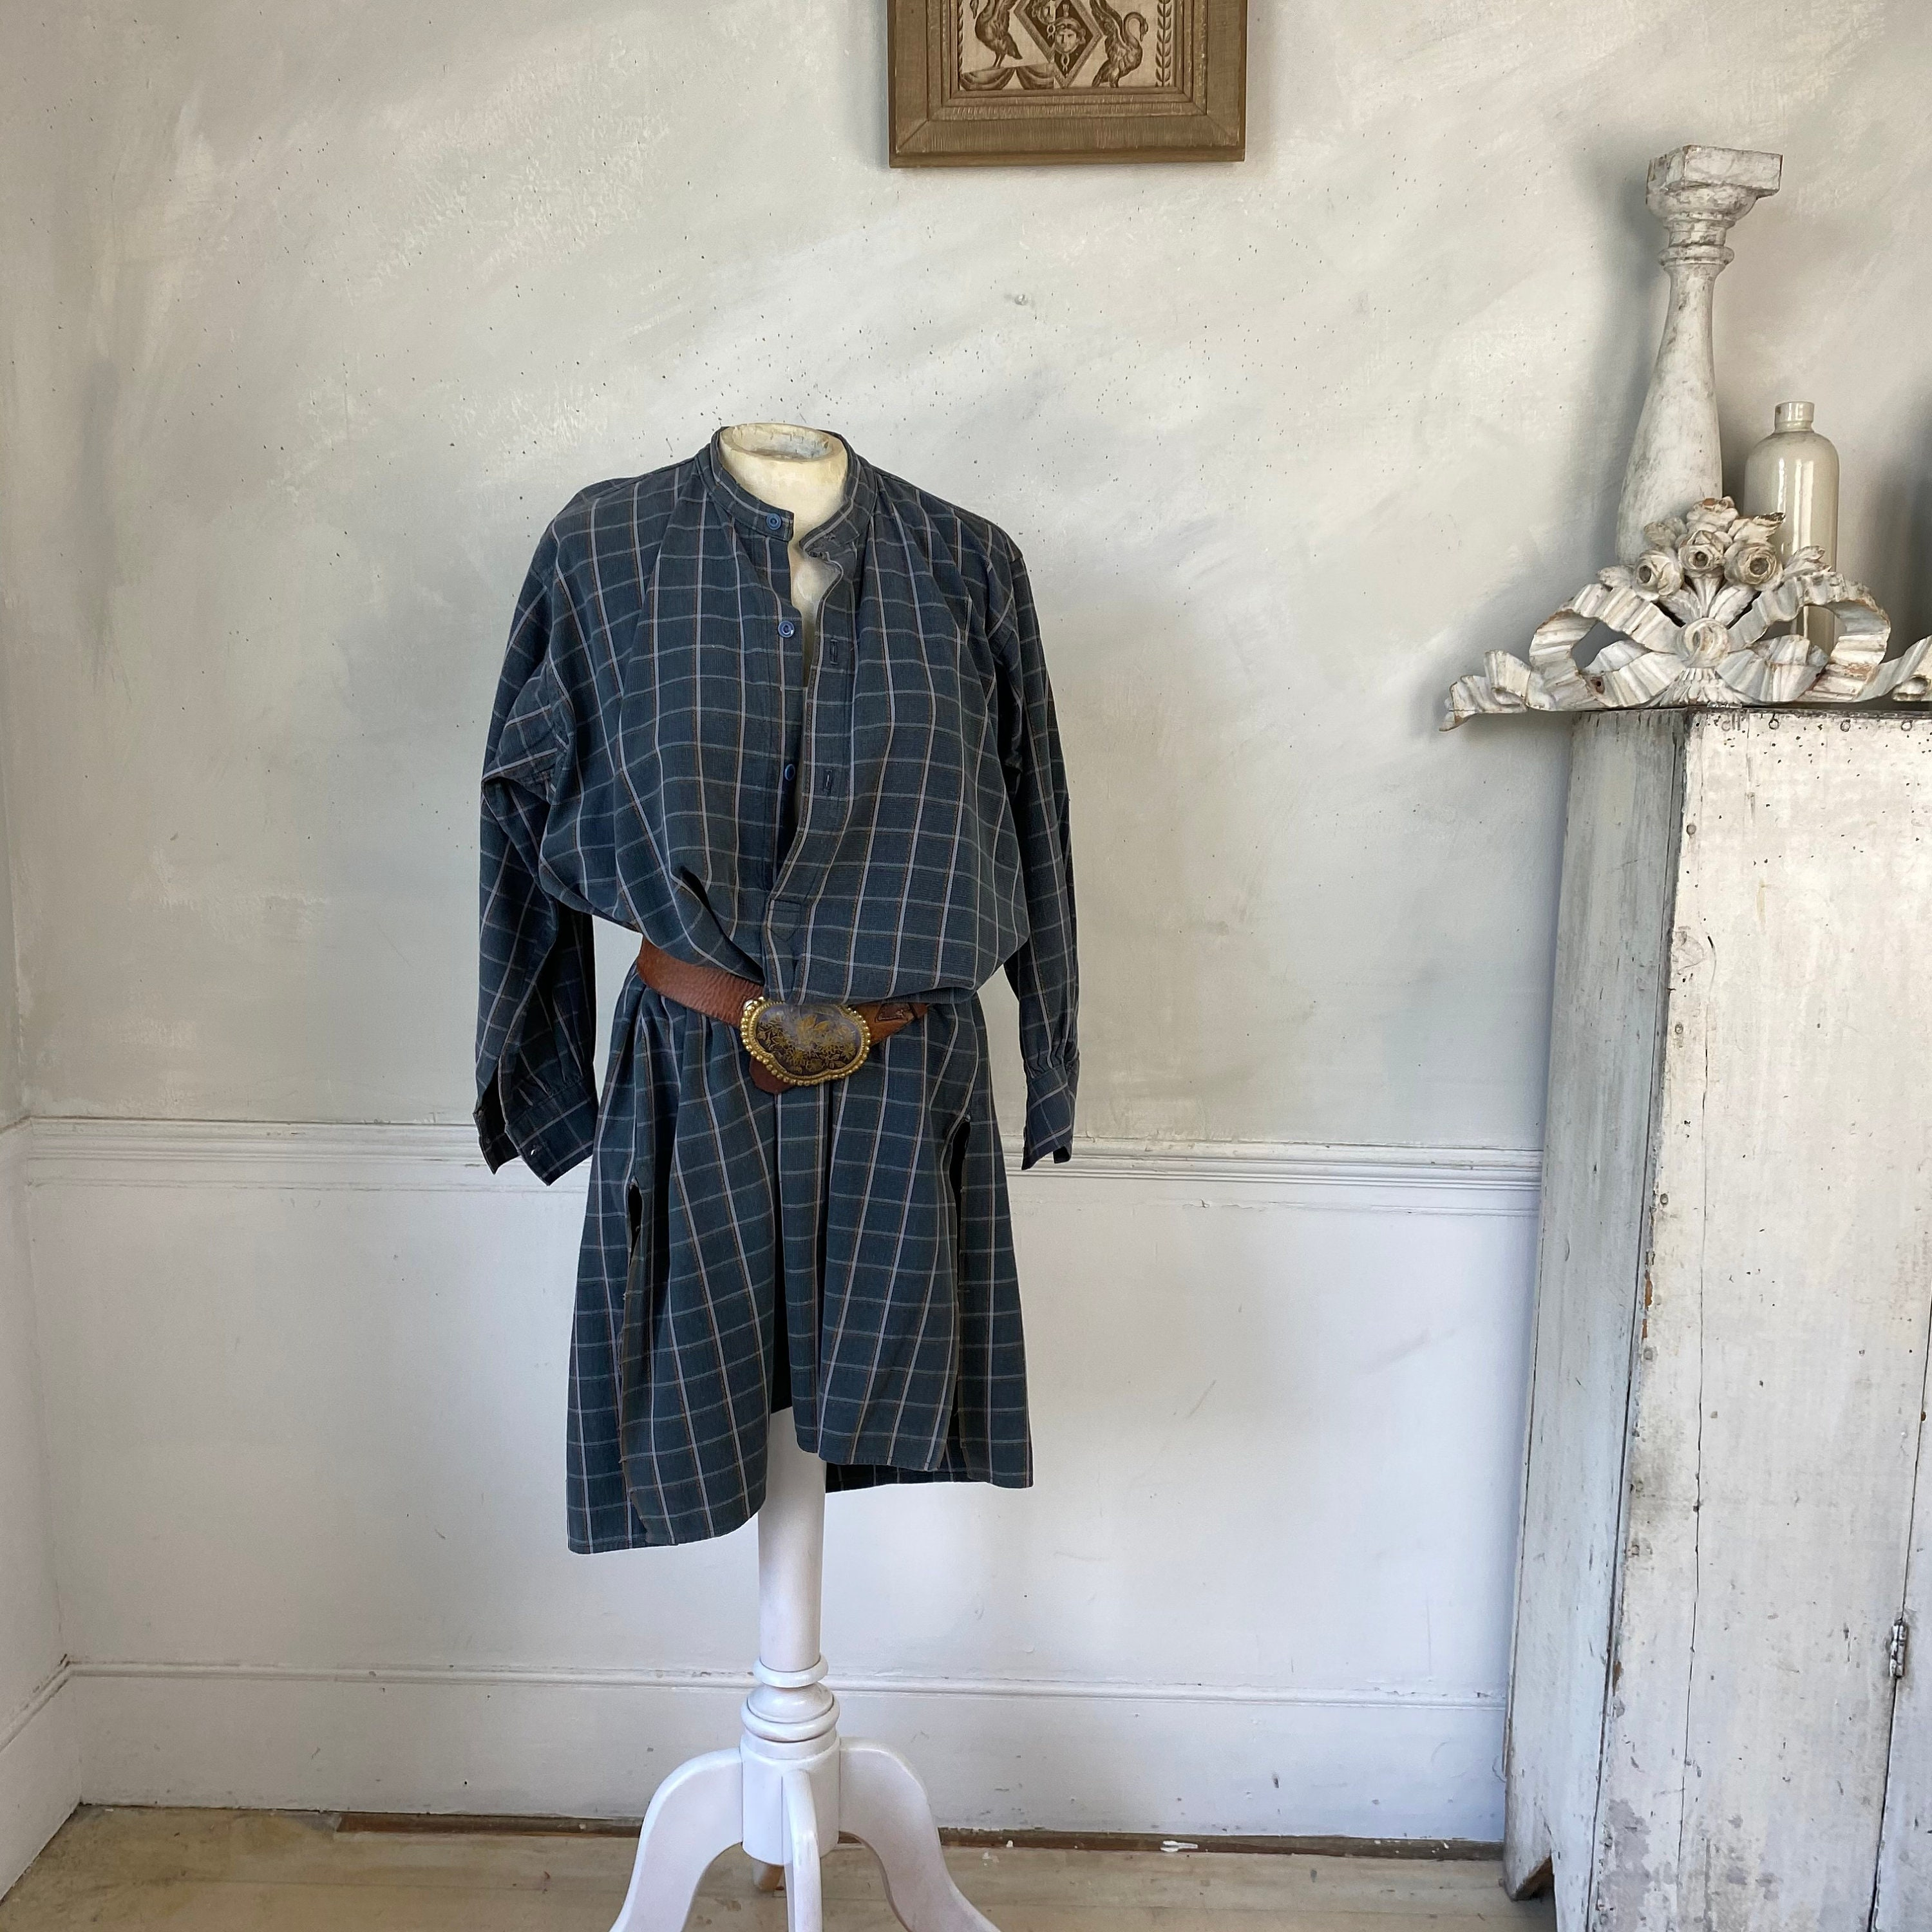 1940s Men's Shirts, Sweaters, Vests Sturdy Mens Vintage Striped Plaid Shirt Or Tunic Soft Cotton White Circa 1940S French Workwear Work Wear $155.00 AT vintagedancer.com